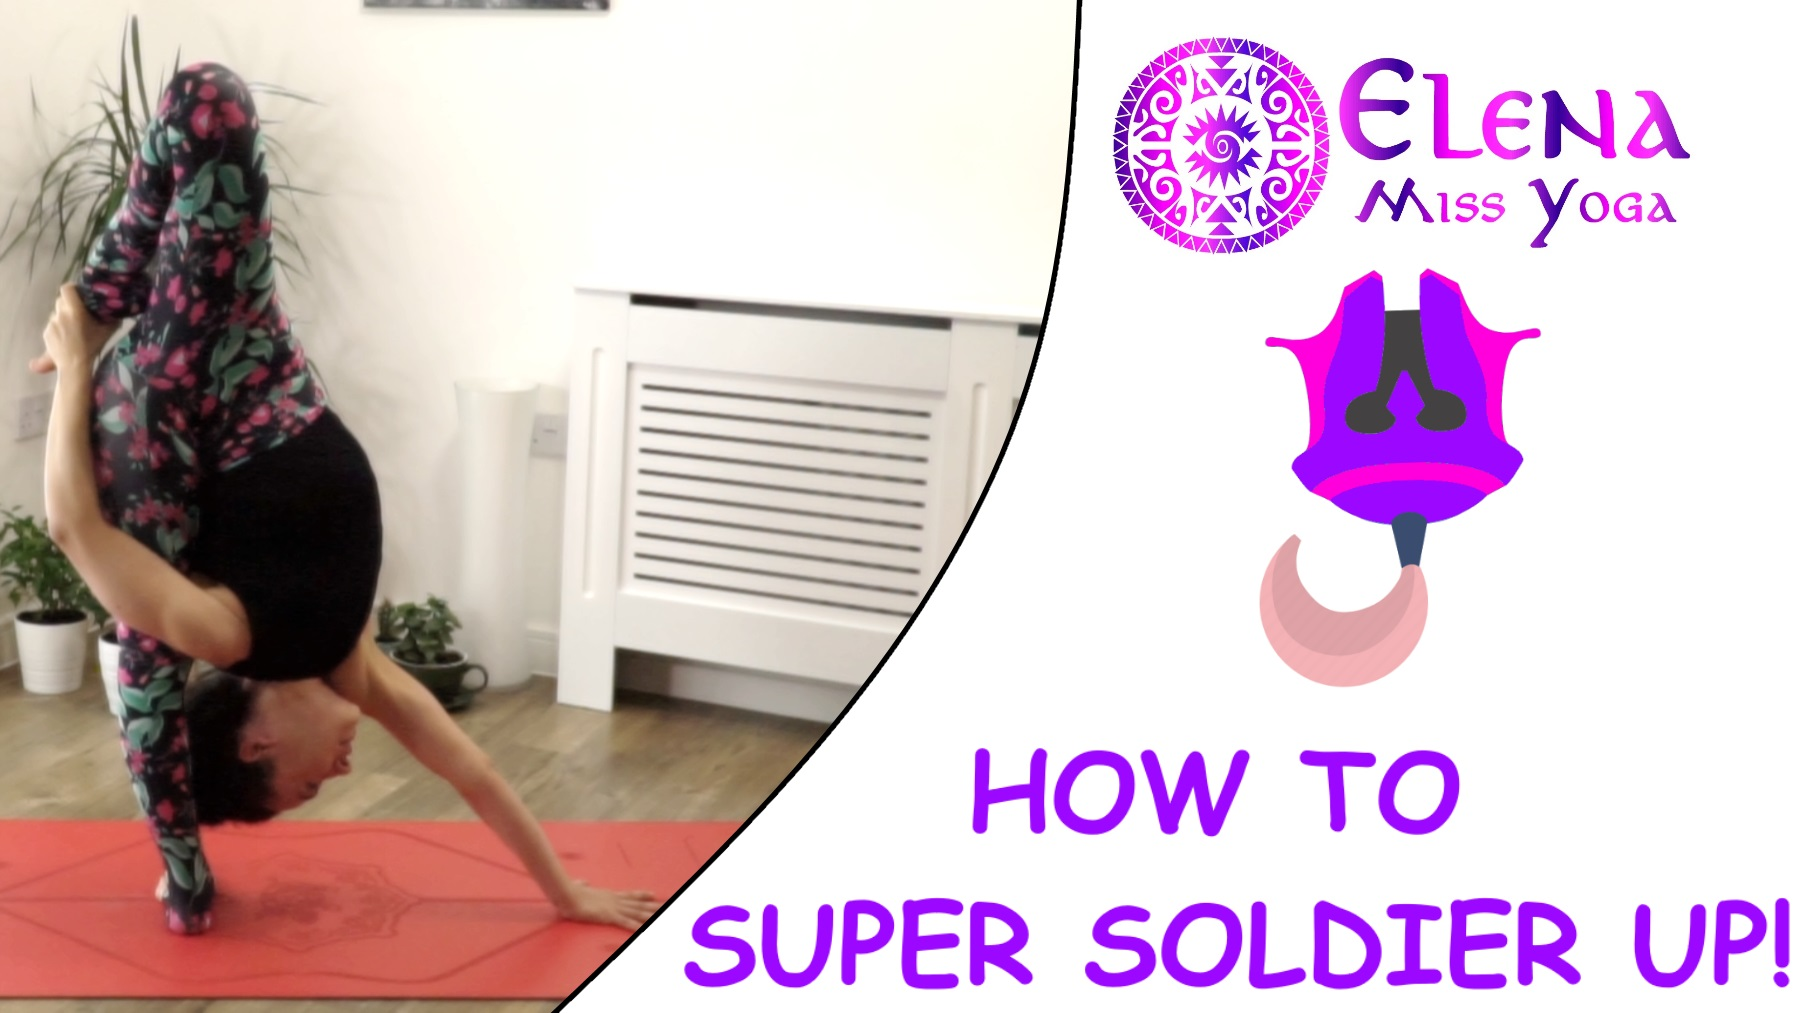 HOW TO SUPER SOLDIER UP!